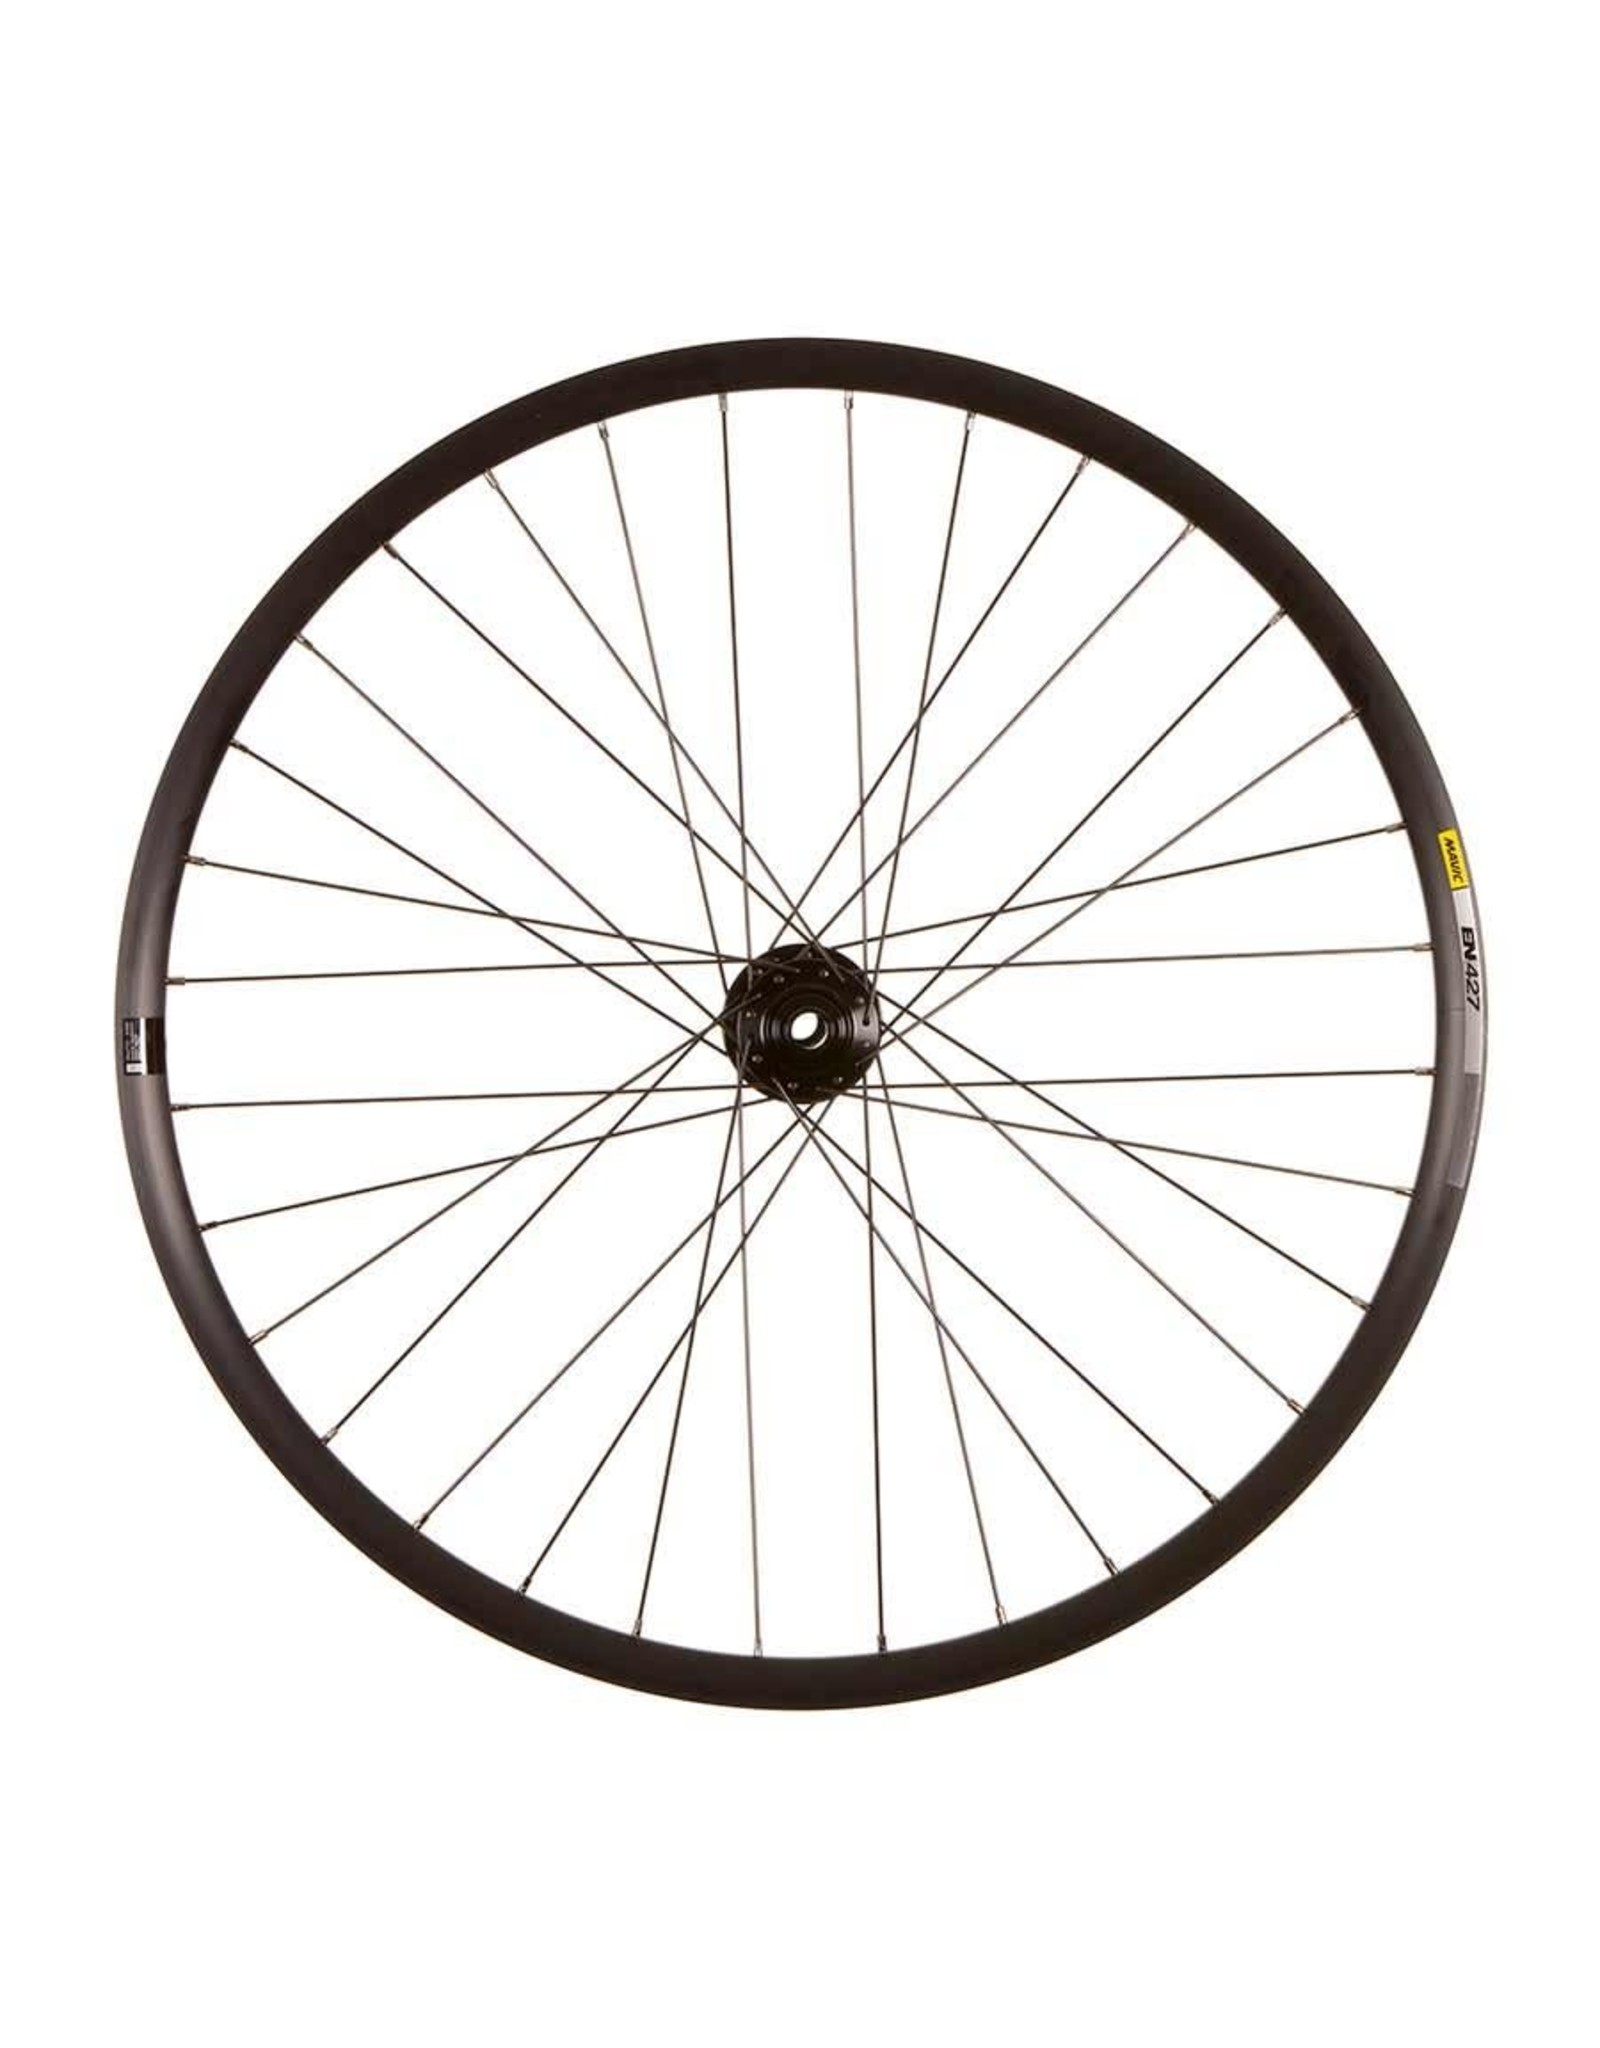 SRAM Mavic EN427 Disc Black/ SRAM 900, Wheel, Front, 27.5'' / 584, Holes: 32, 15mm TA, 110mm Boost, Disc IS 6-bolt